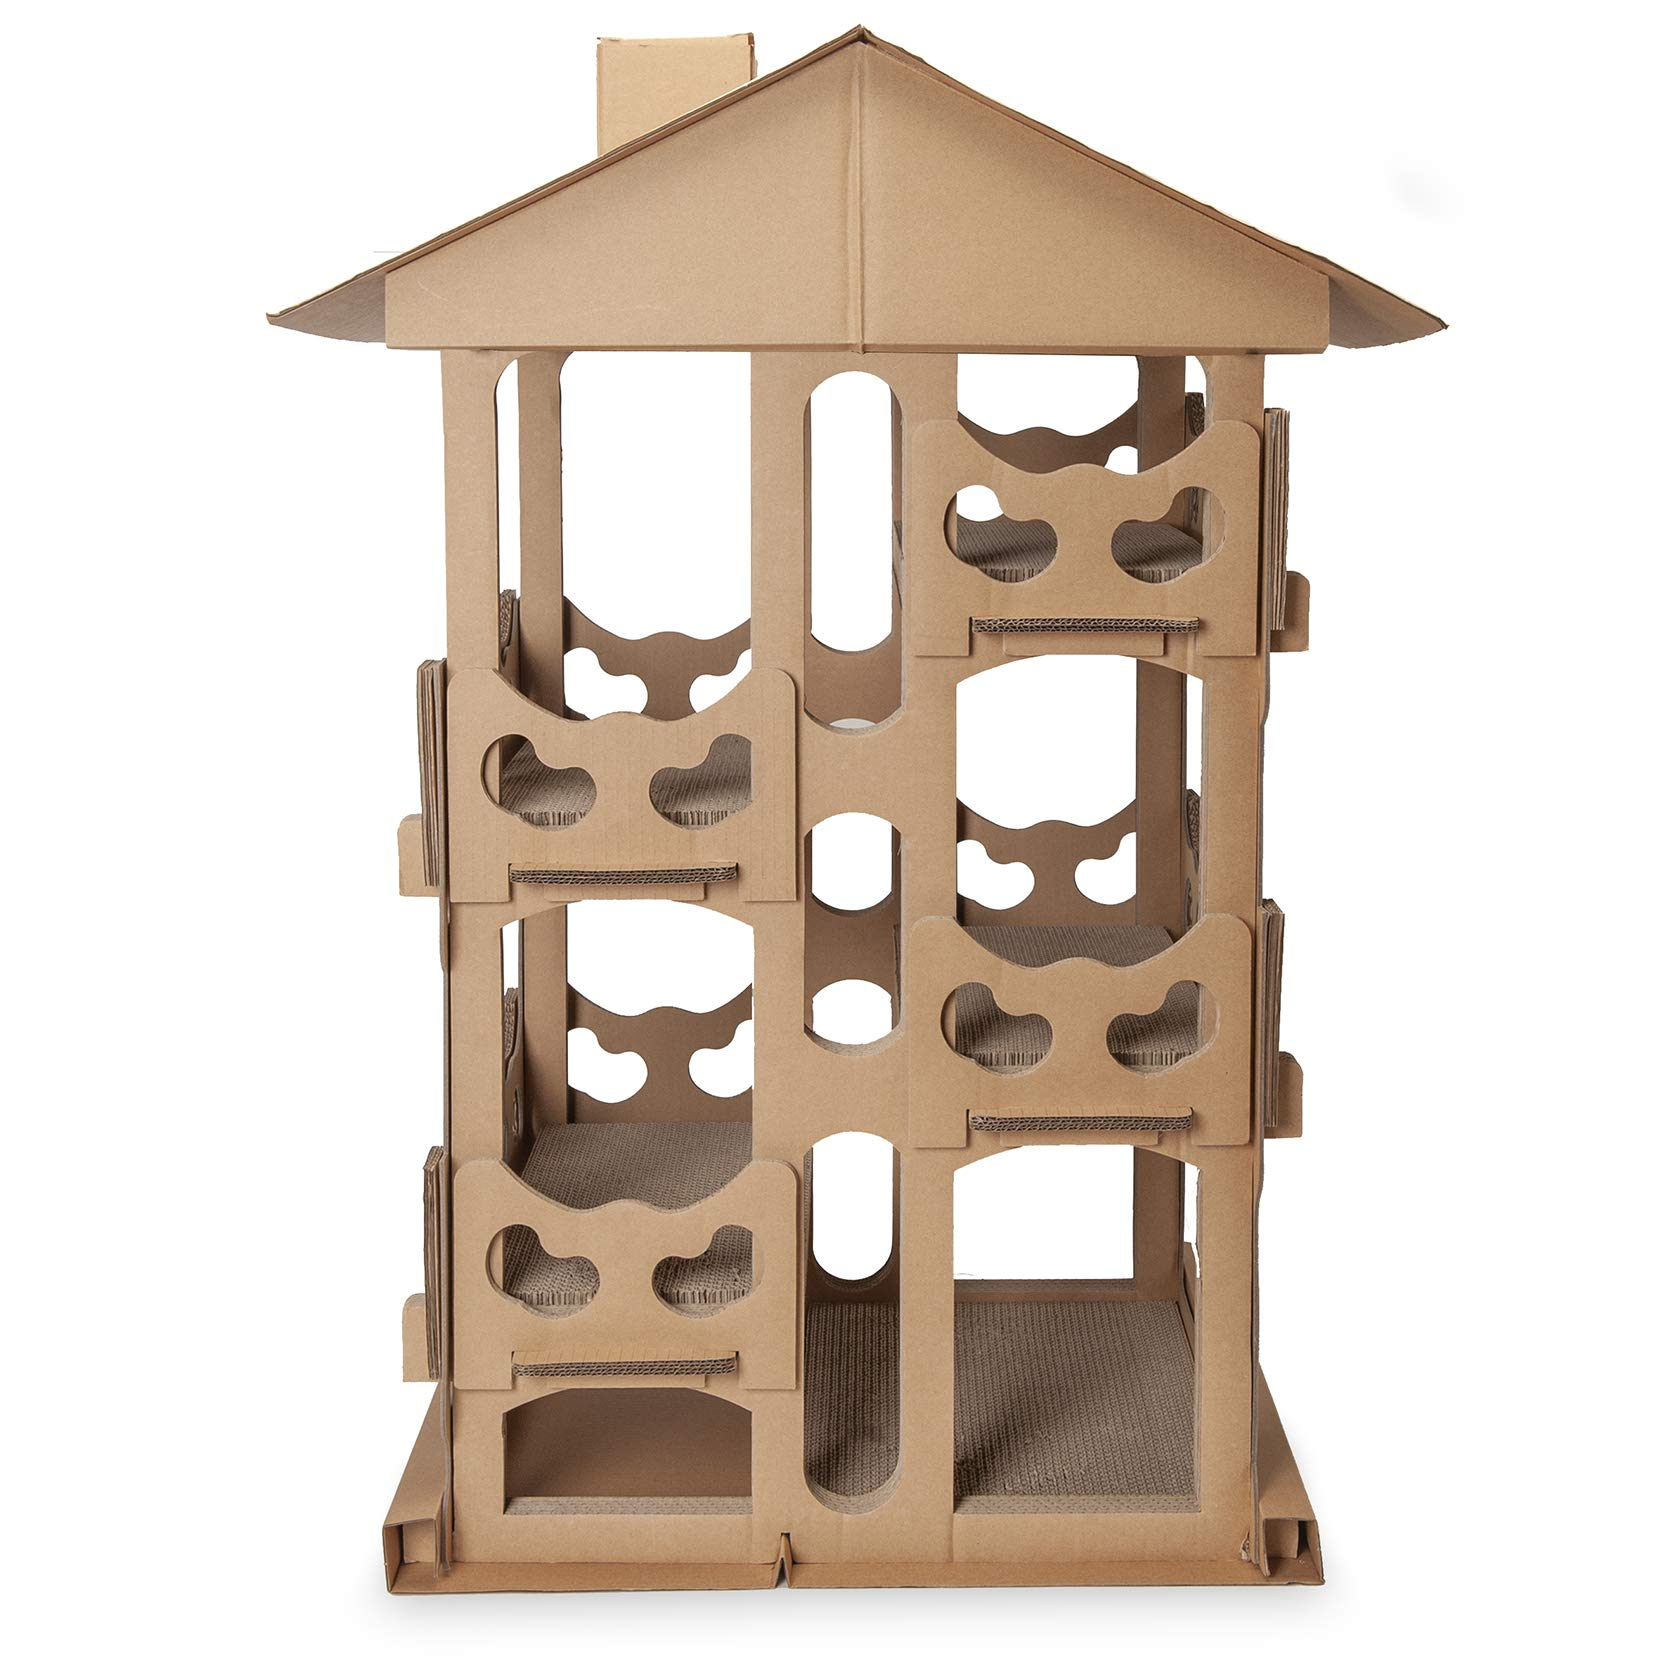 Furhaven Pet Cat Furniture   Corrugated Cat Scratcher Tower Playground Condo Hideout Pet House Apartment w/ Catnip for Cats & Kittens, Cardboard (Brown), One Size by Furhaven